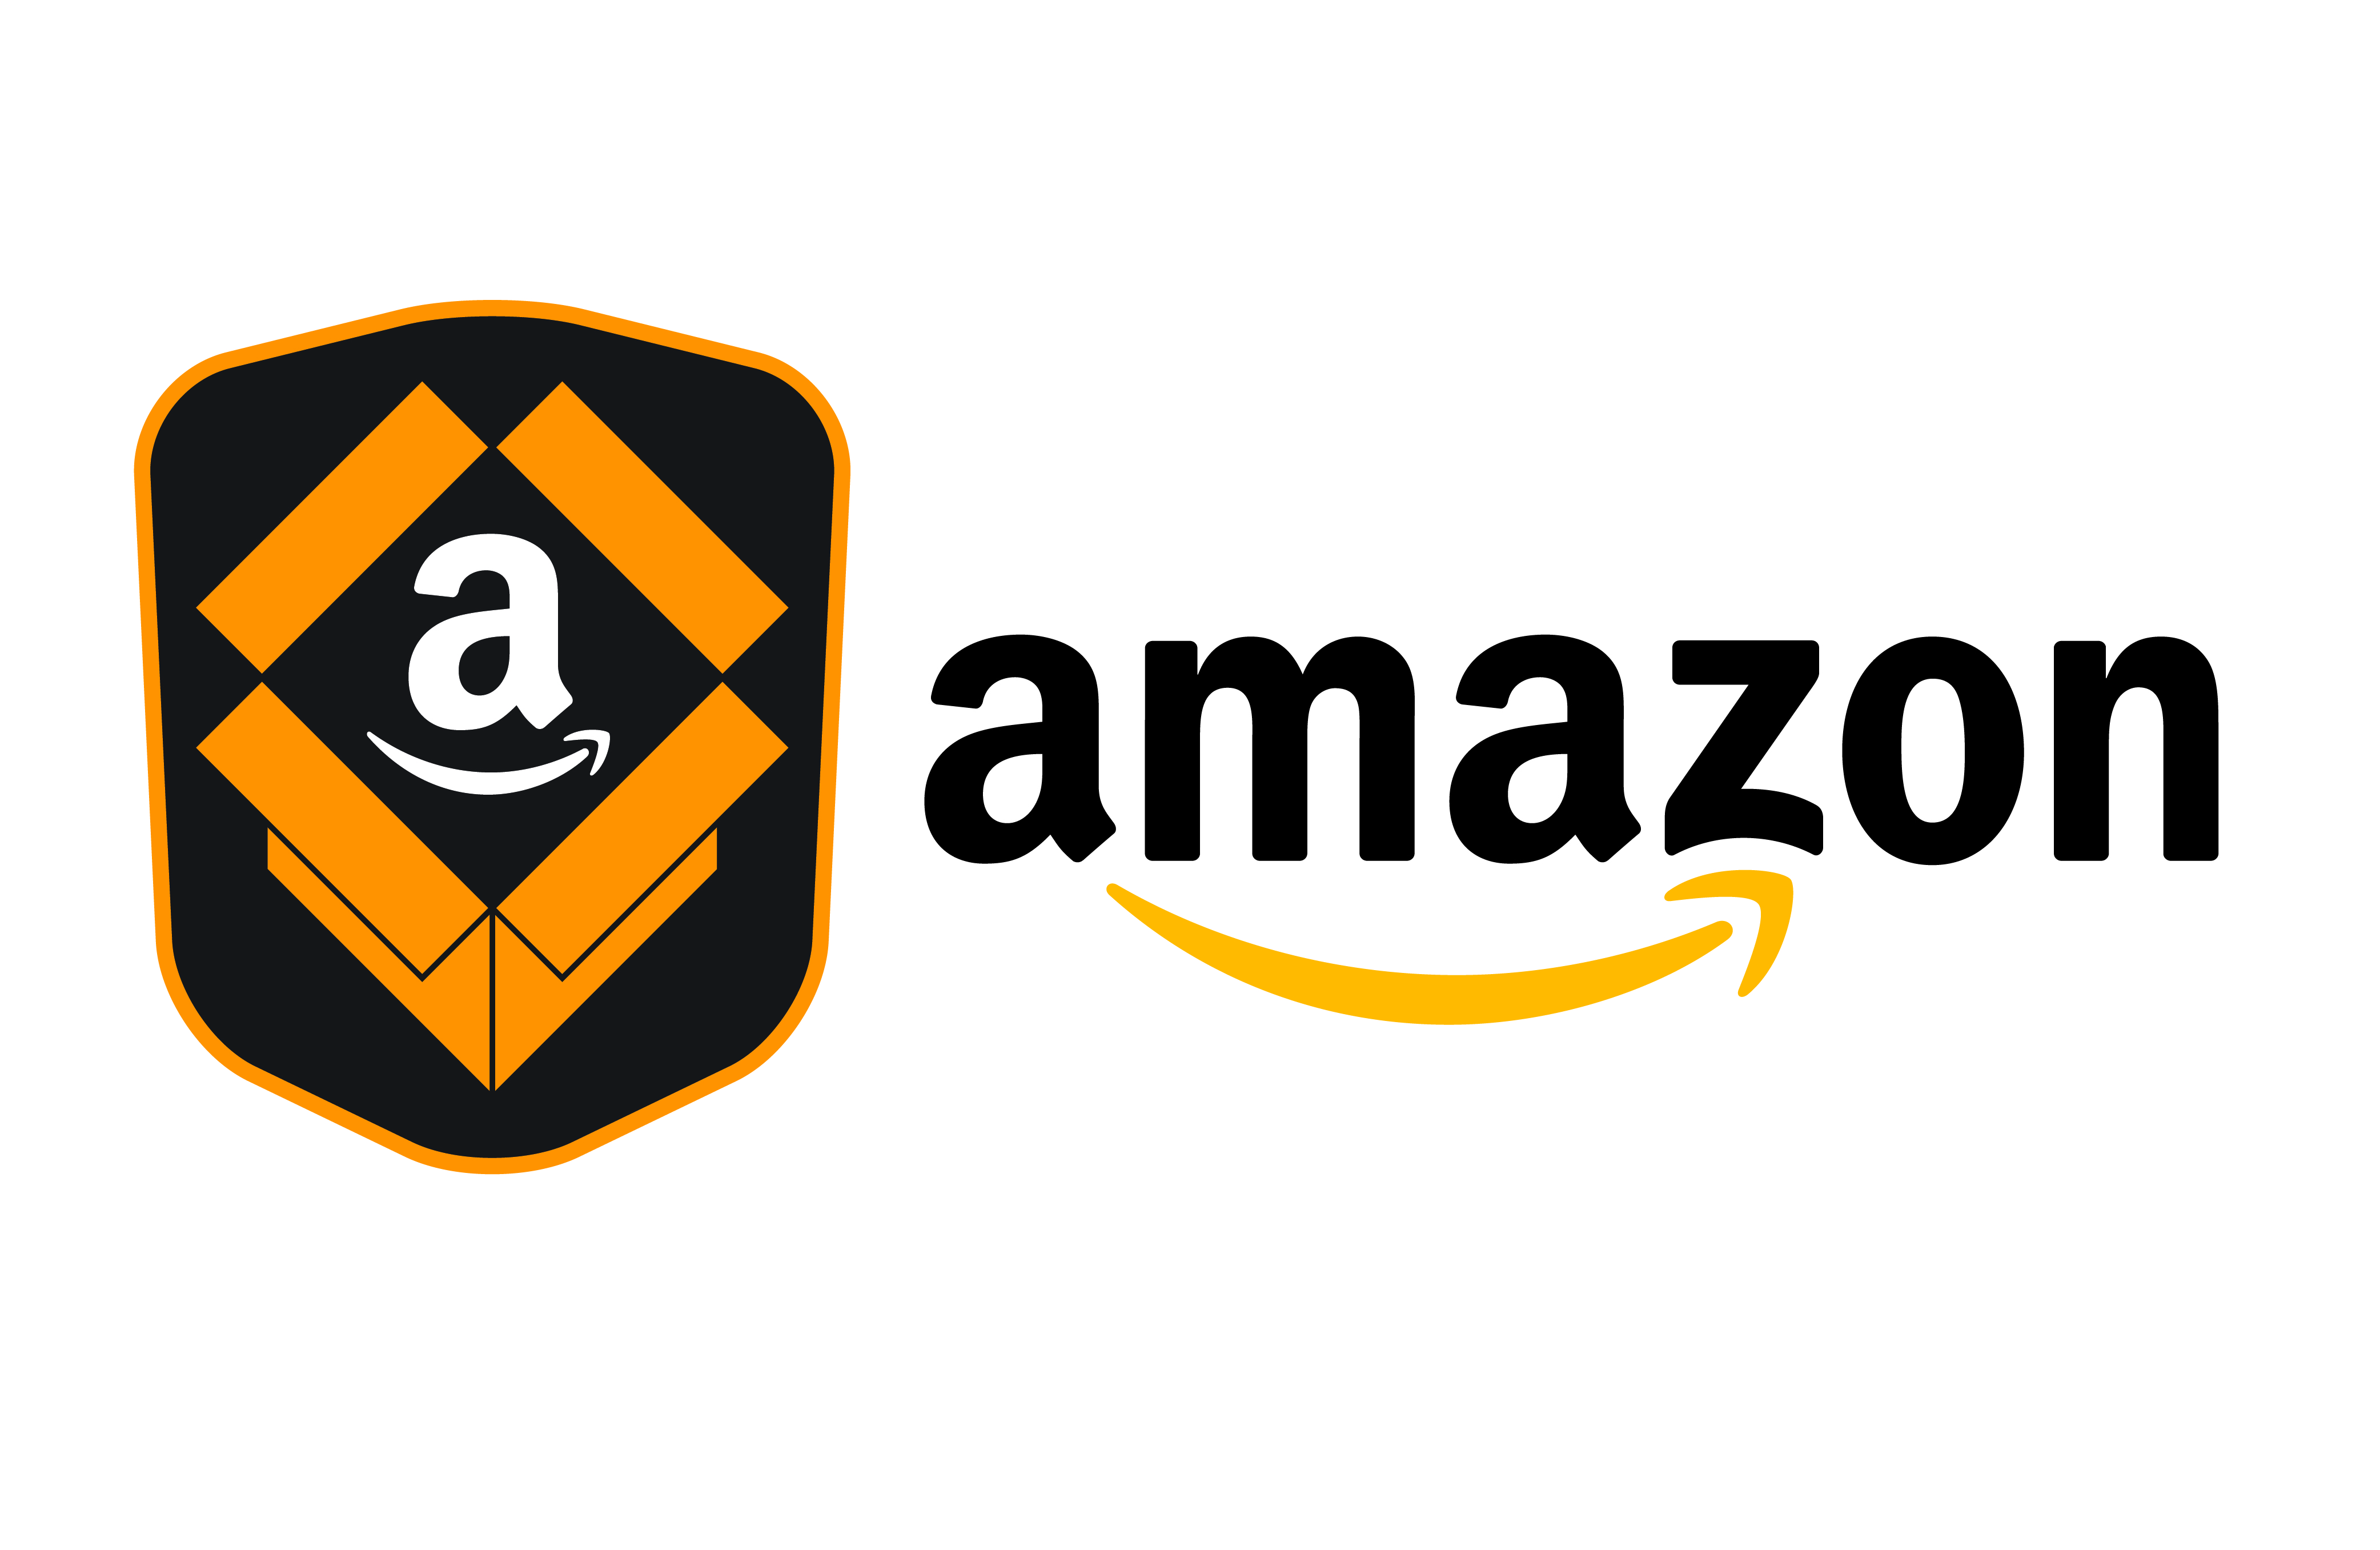 Amazon to invest Rs 250 crore on marketing and promotions this festive season.